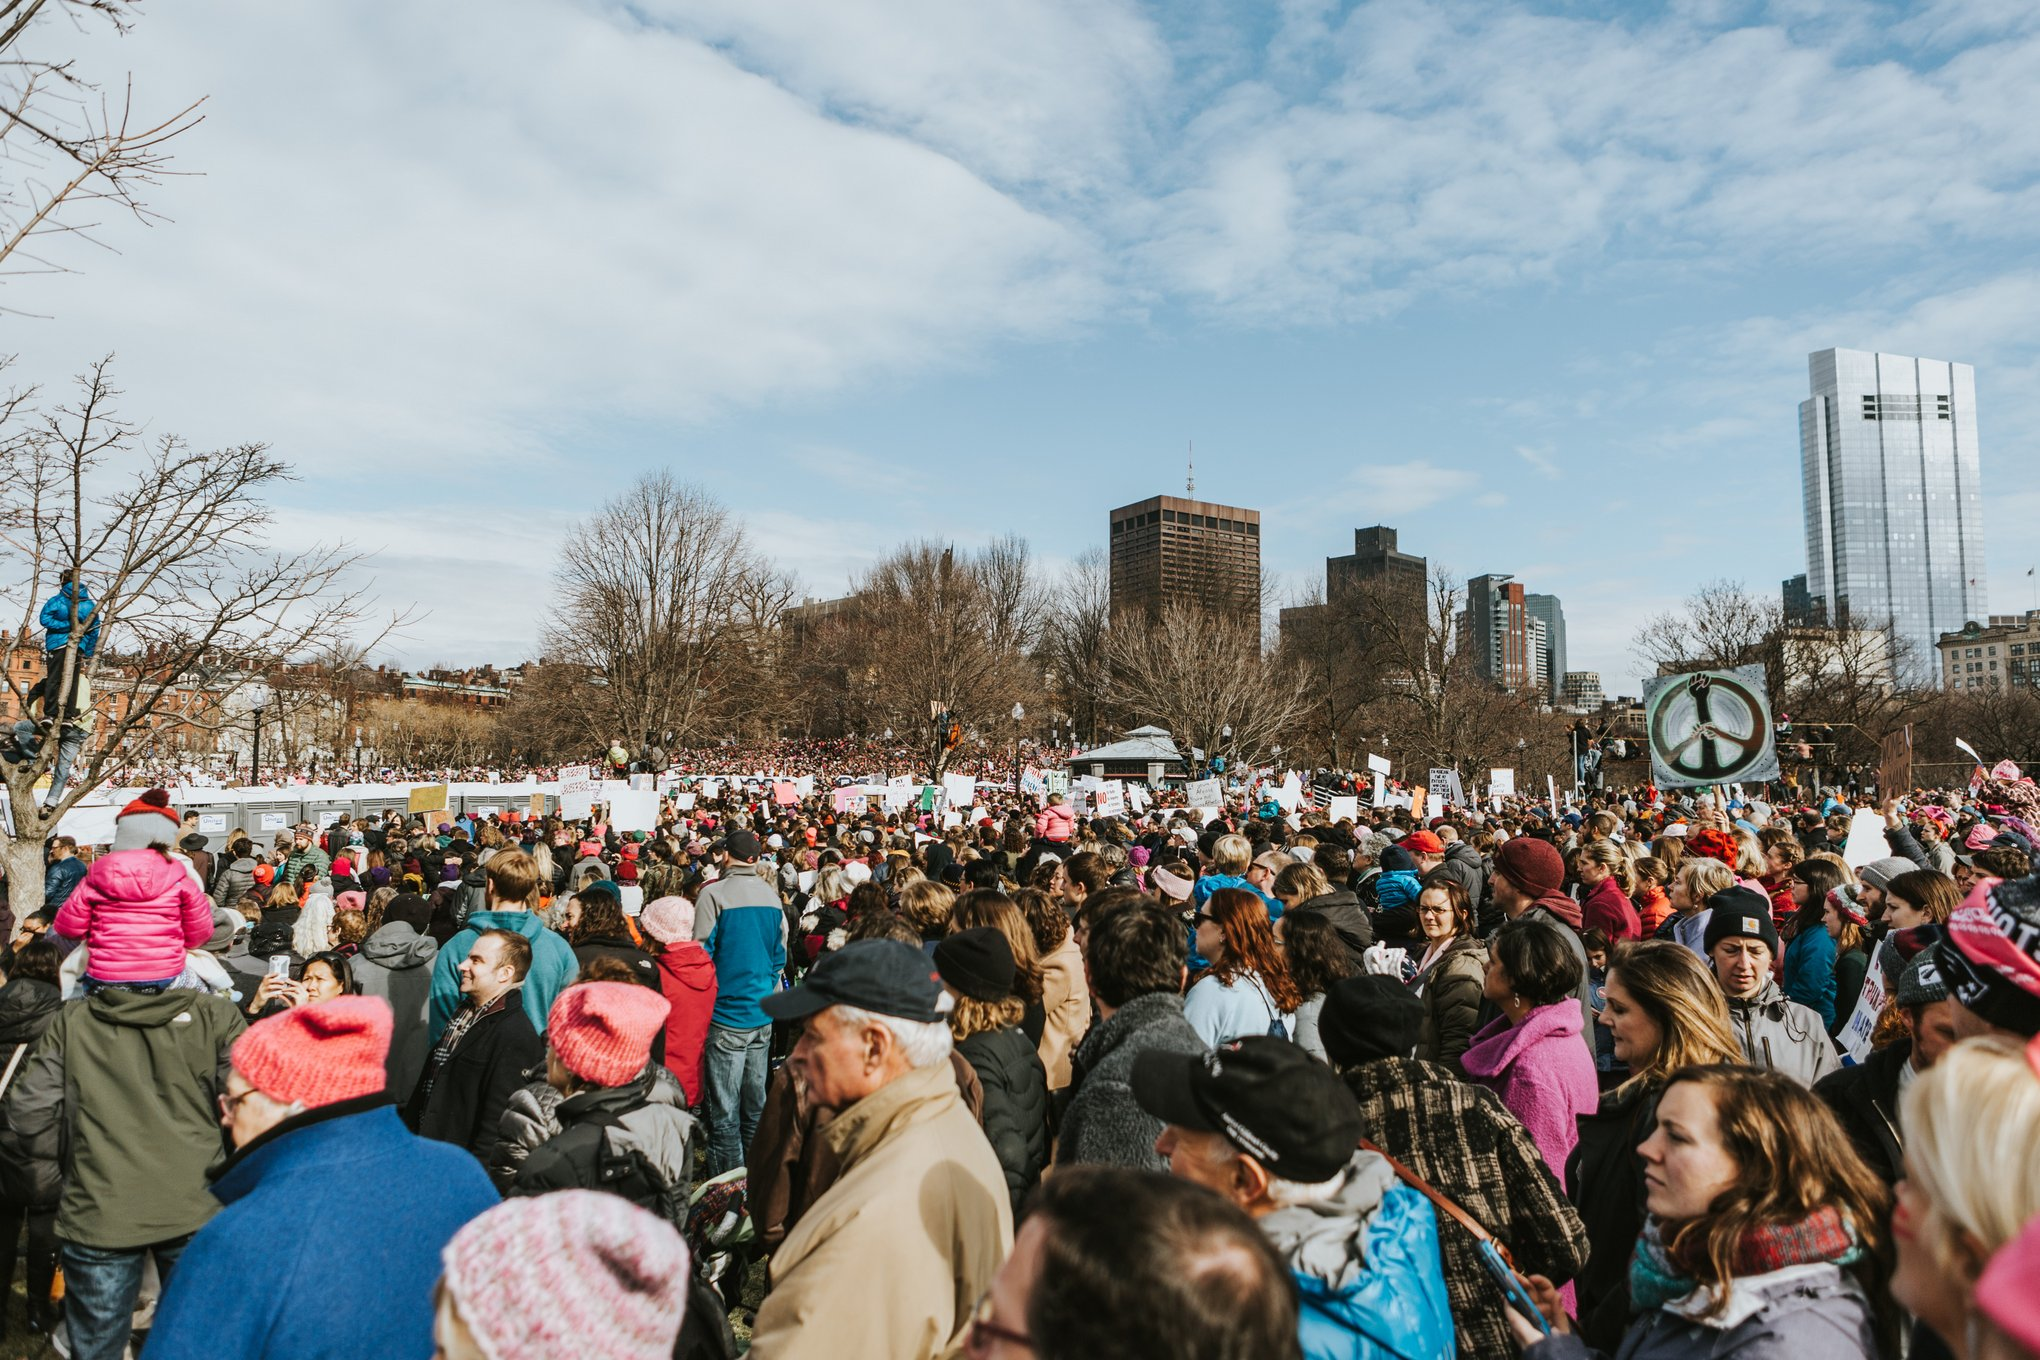 Lena_Mirisola_Boston_Womens_March-10.jpg